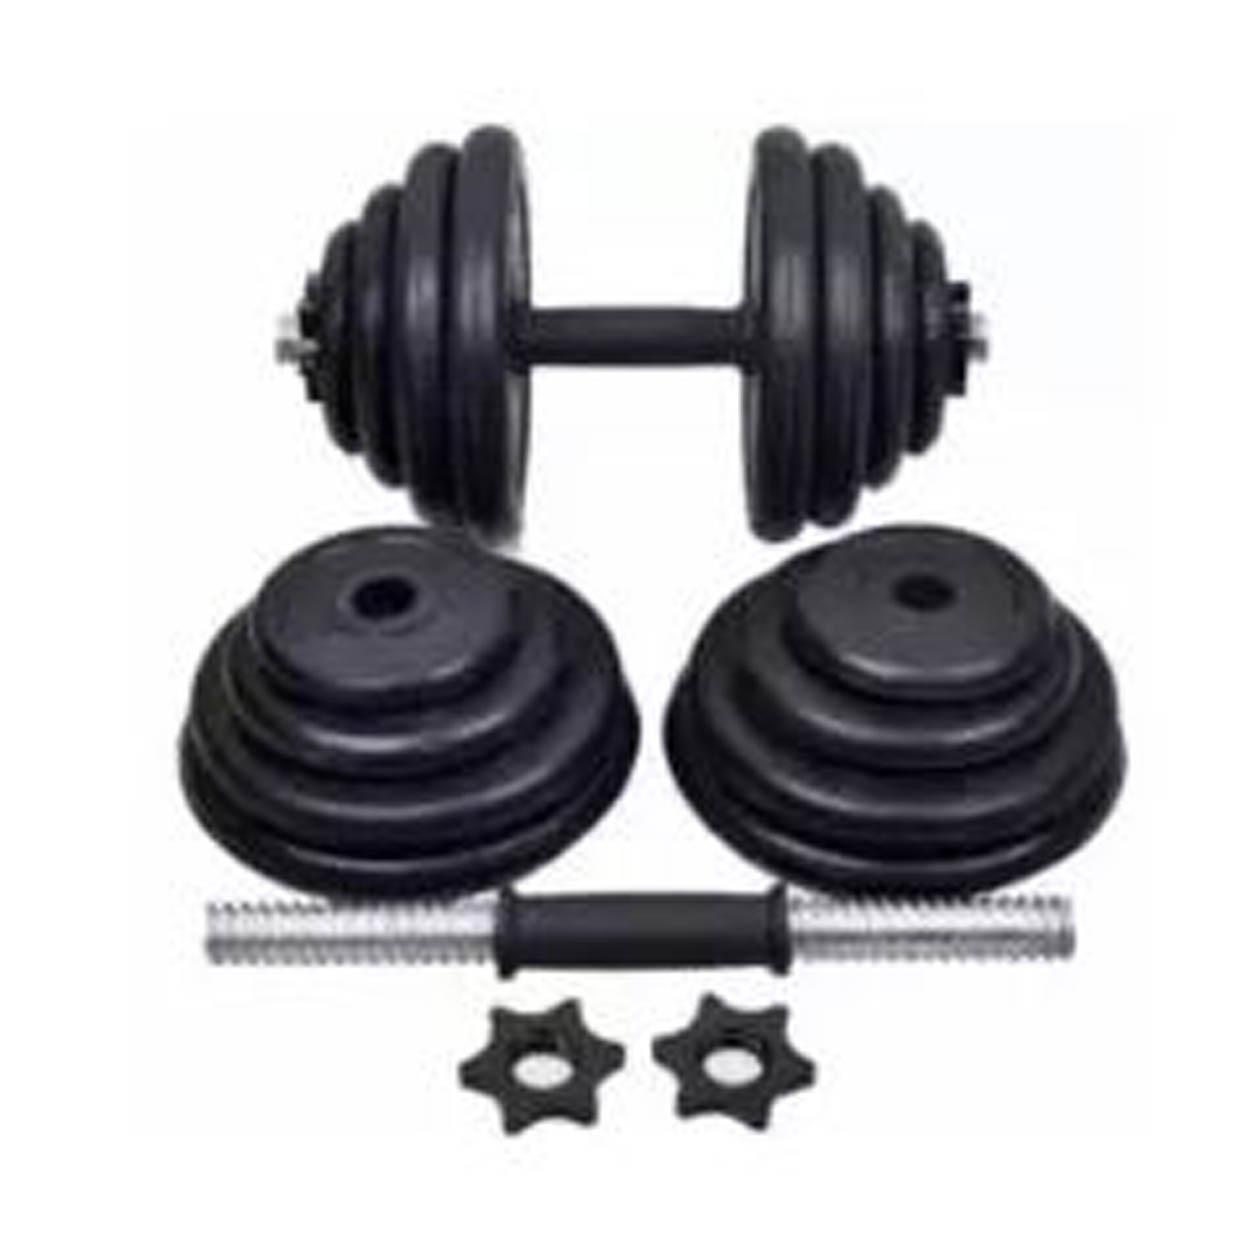 New Dumbell Set 30kg Gym Fitness image on snachetto.com